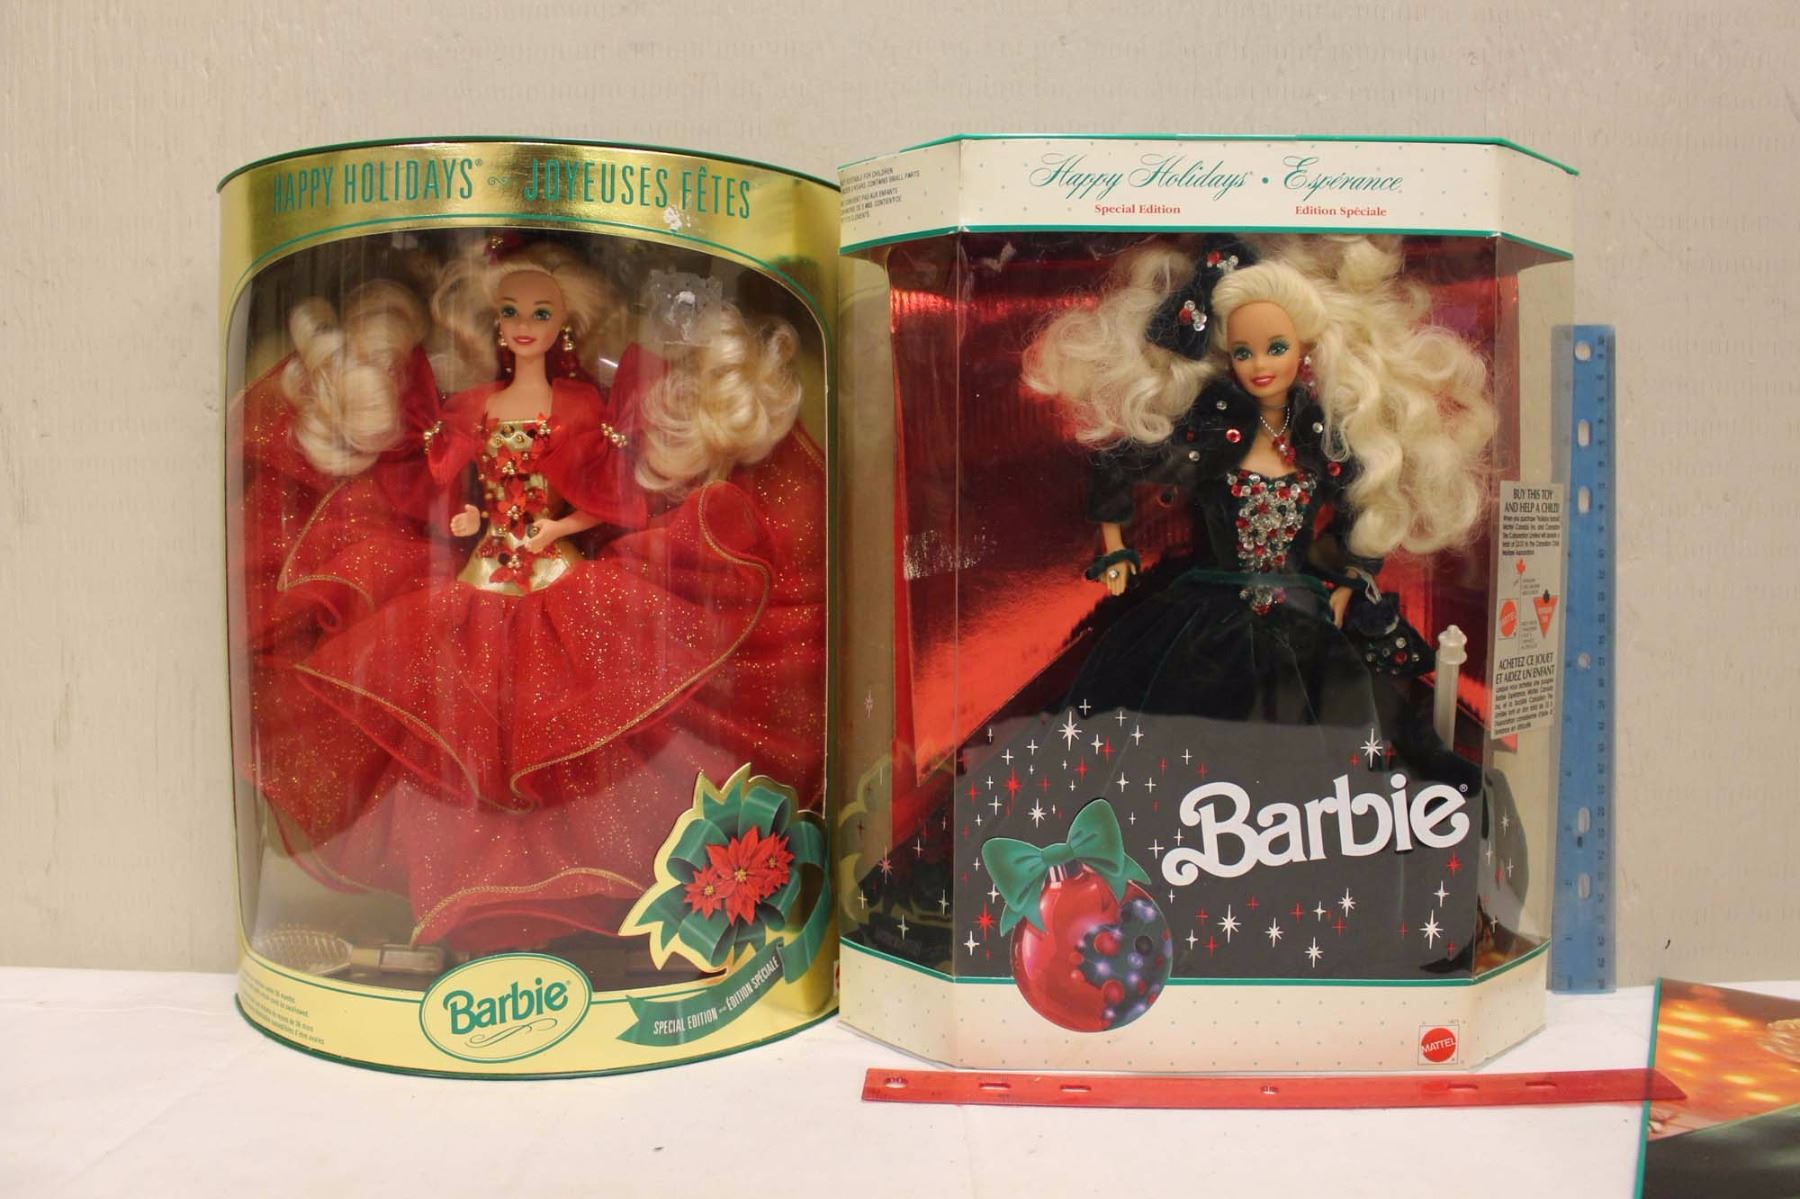 Image 1 Happy Holiday Special Edition Barbie Dolls 219911993